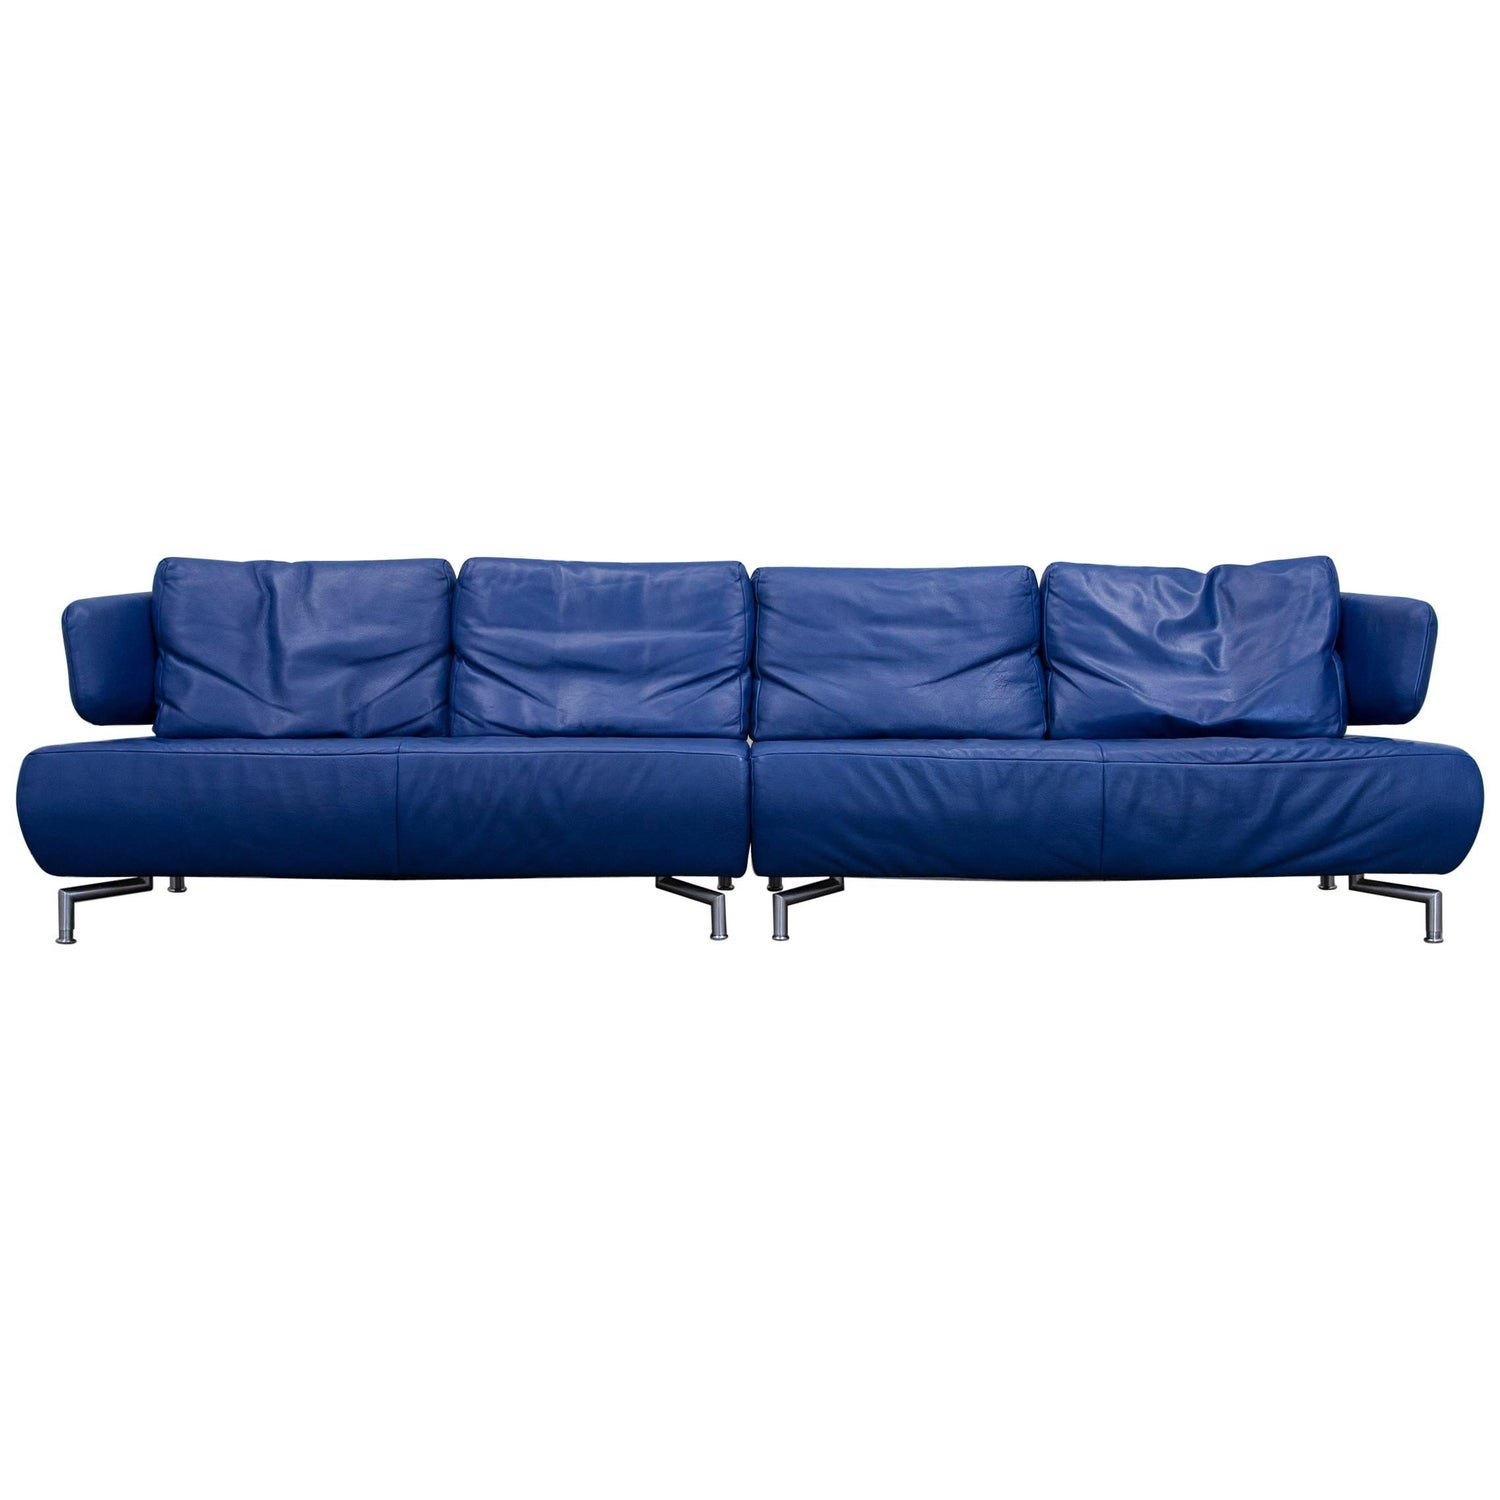 Koinor Designer Sofa Leather Blue Four Seat Couch Function Modern